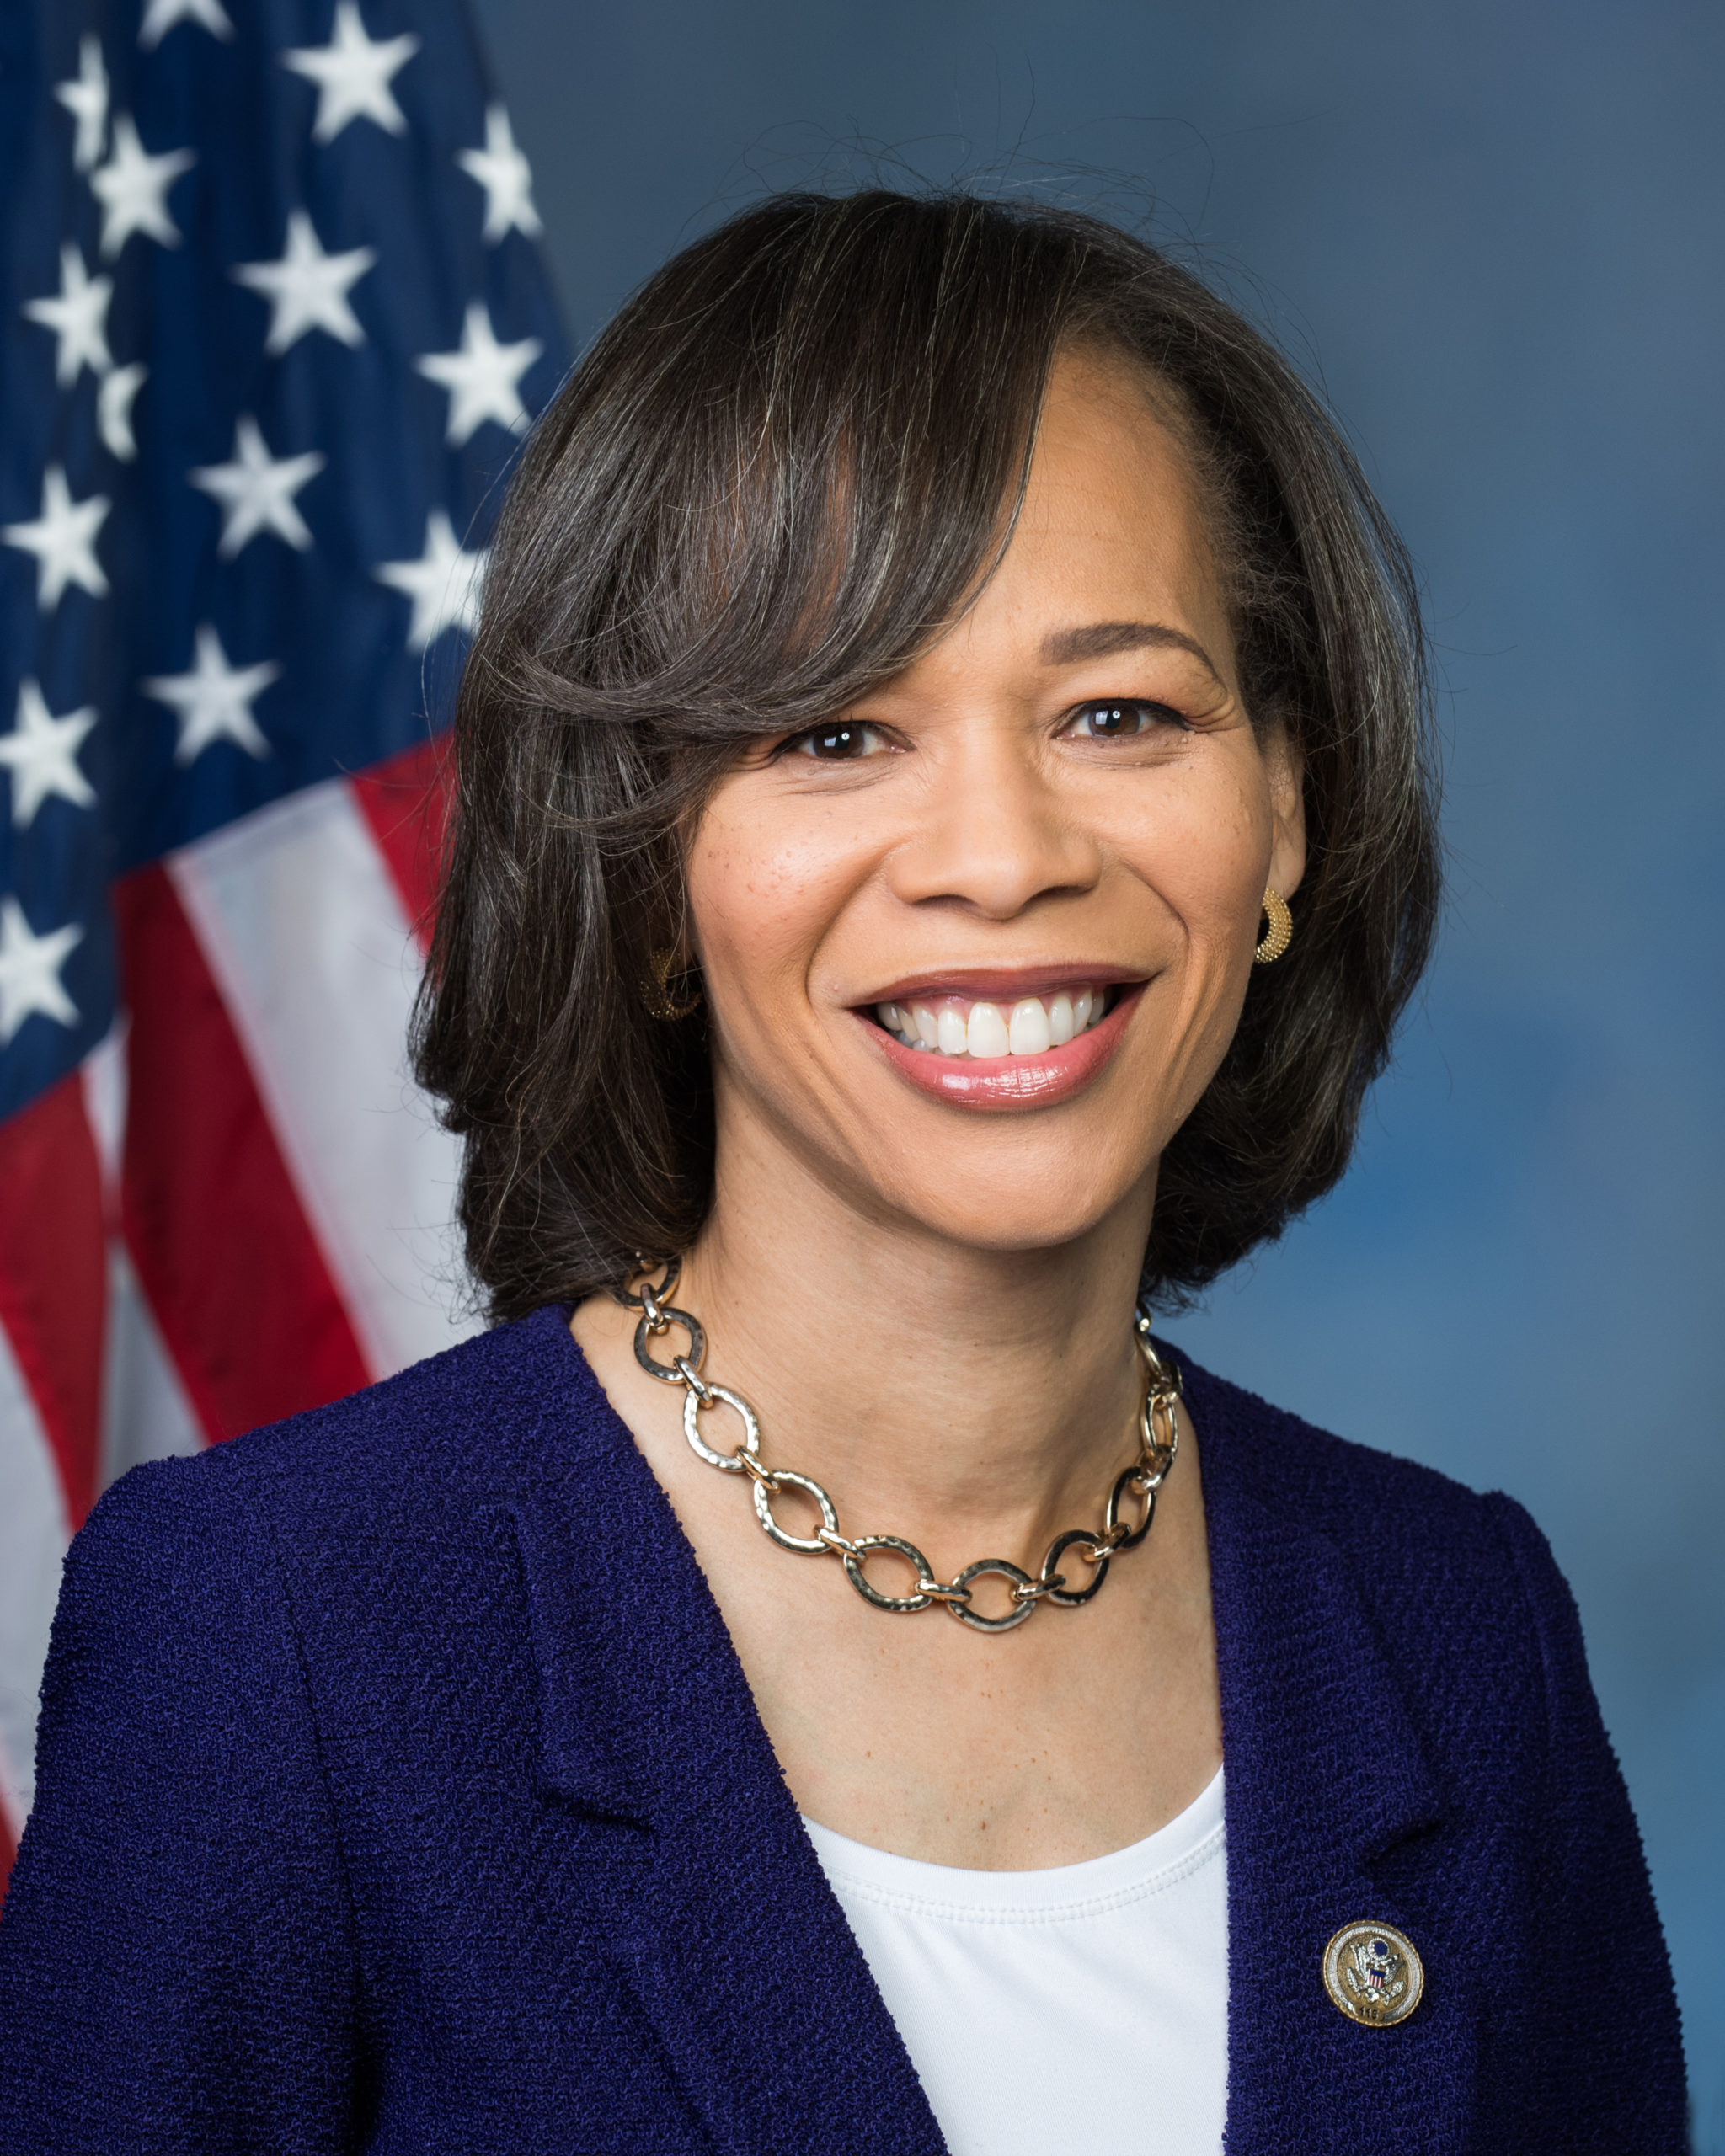 A portrait of Lisa Blunt Rochester in front of an American flag